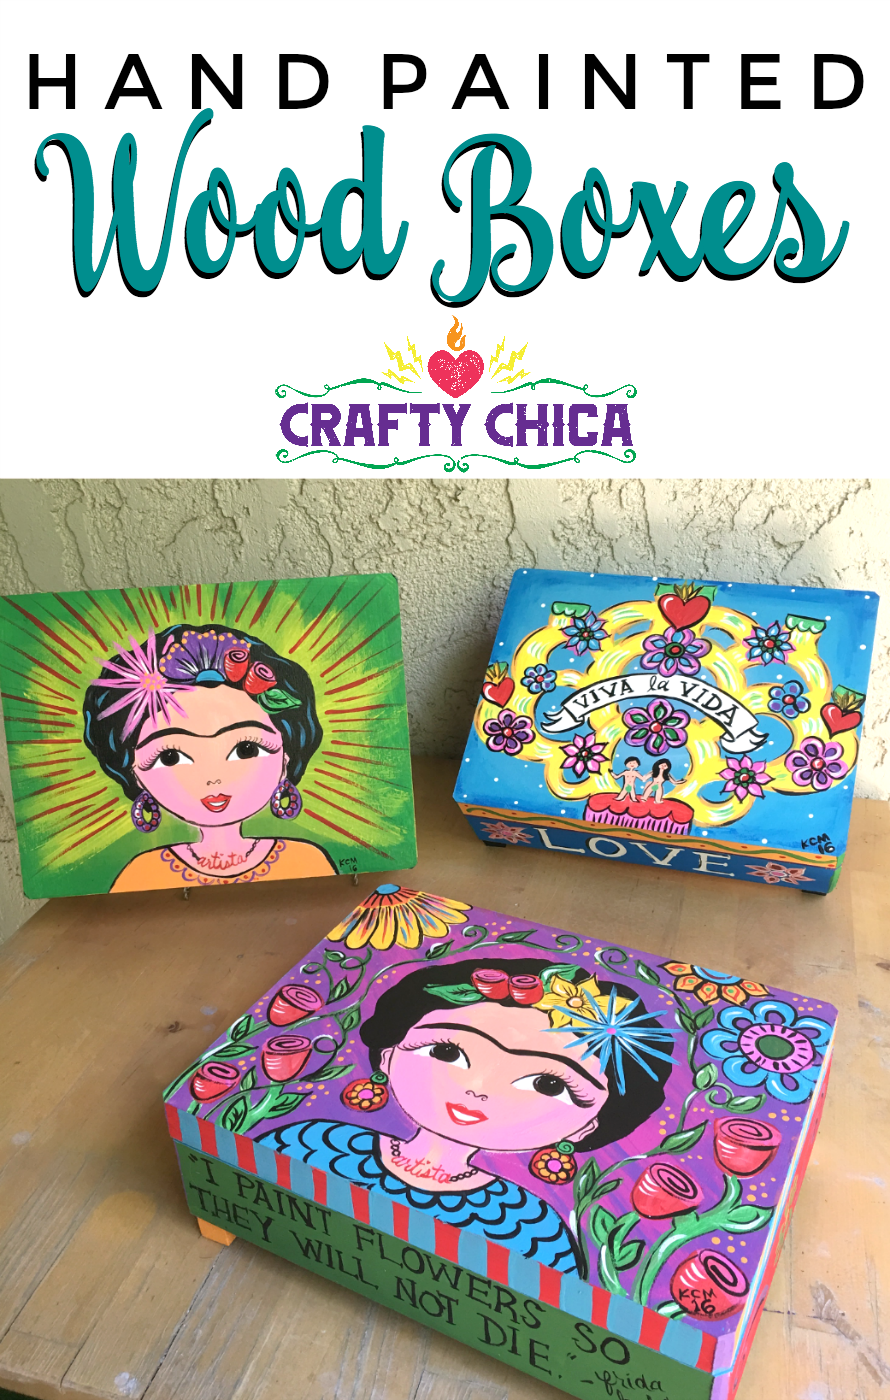 One of the most classic forms of crafting is old school painting on a surface. That's where this hand painted wood box project comes into play. Paint, brushes, a box and unlimited imagination and creativity.  Earlier this year, Walnut Hollow was kind enough to sponsor a workshopon the 10th Annual Crafty Chica Art Cruise. They supplied anUnfinished Wood Box(link takes you to Amazon, or you can find them at the craft store) for each cruiser!    OK, on with the tutorial!    Plaid loade...